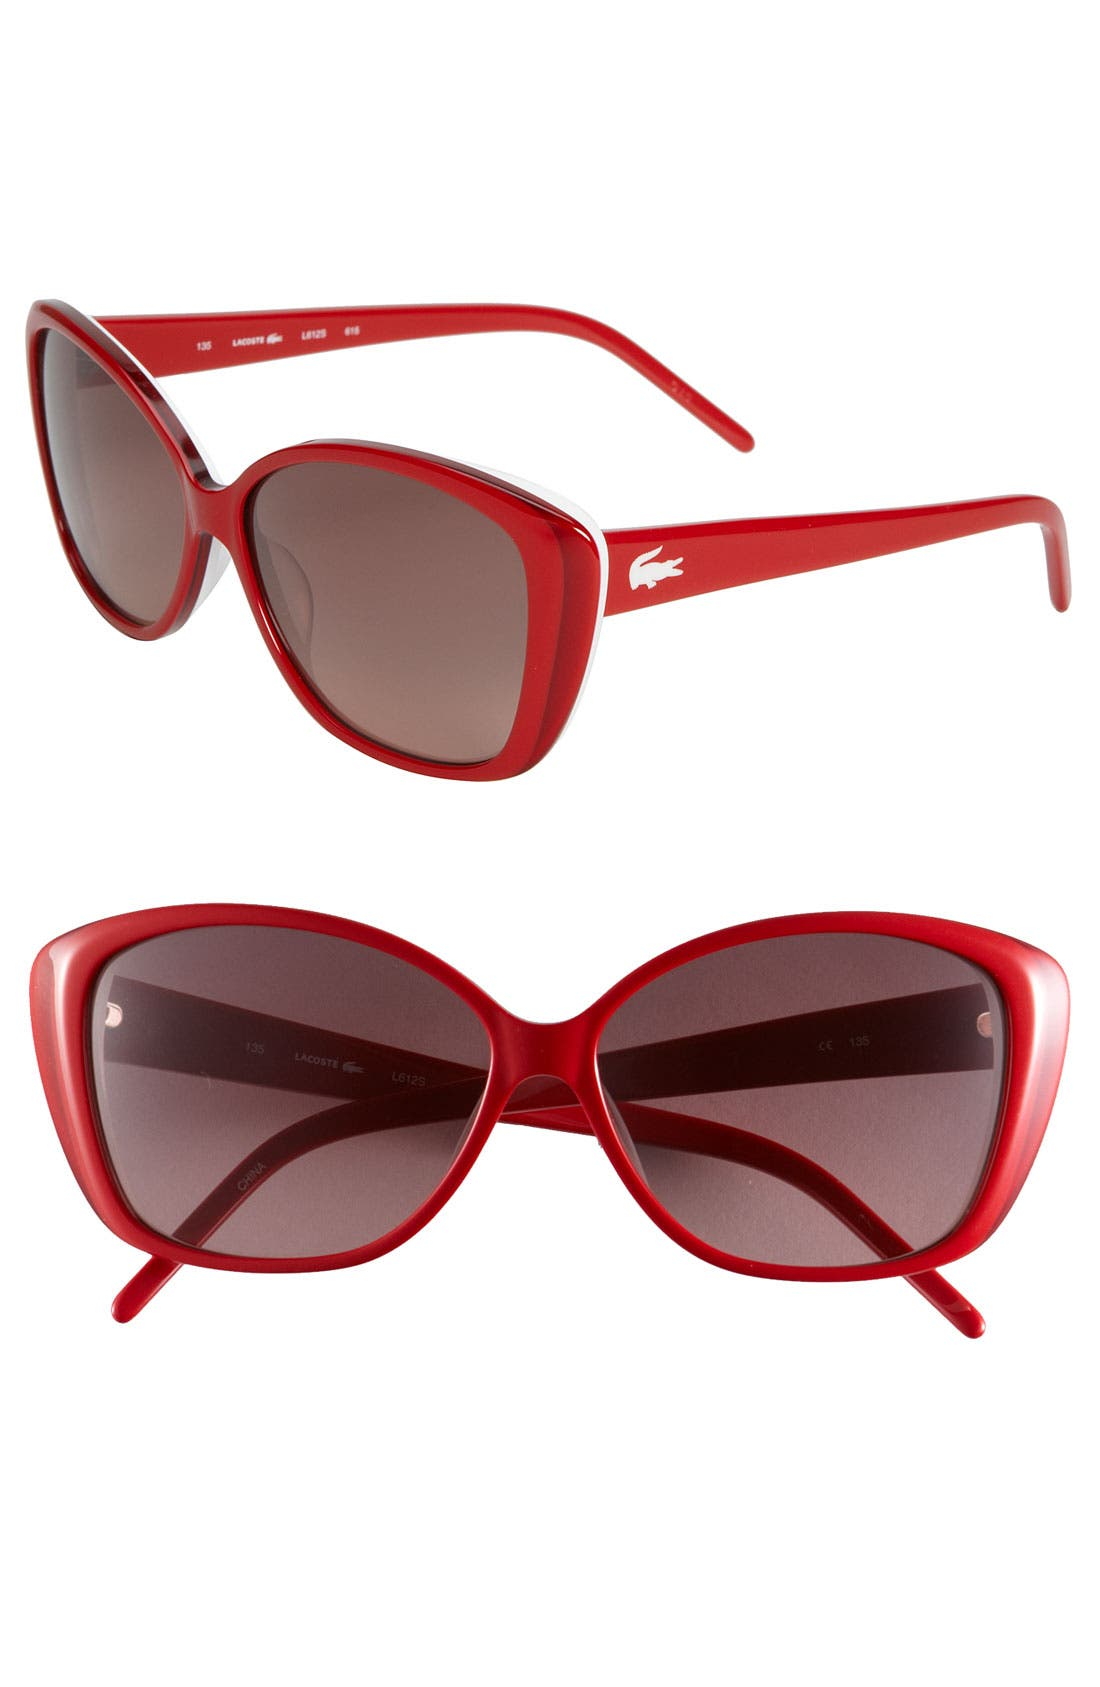 Alternate Image 1 Selected - Lacoste Eyewear Retro Stripe Cat's Eye Sunglasses